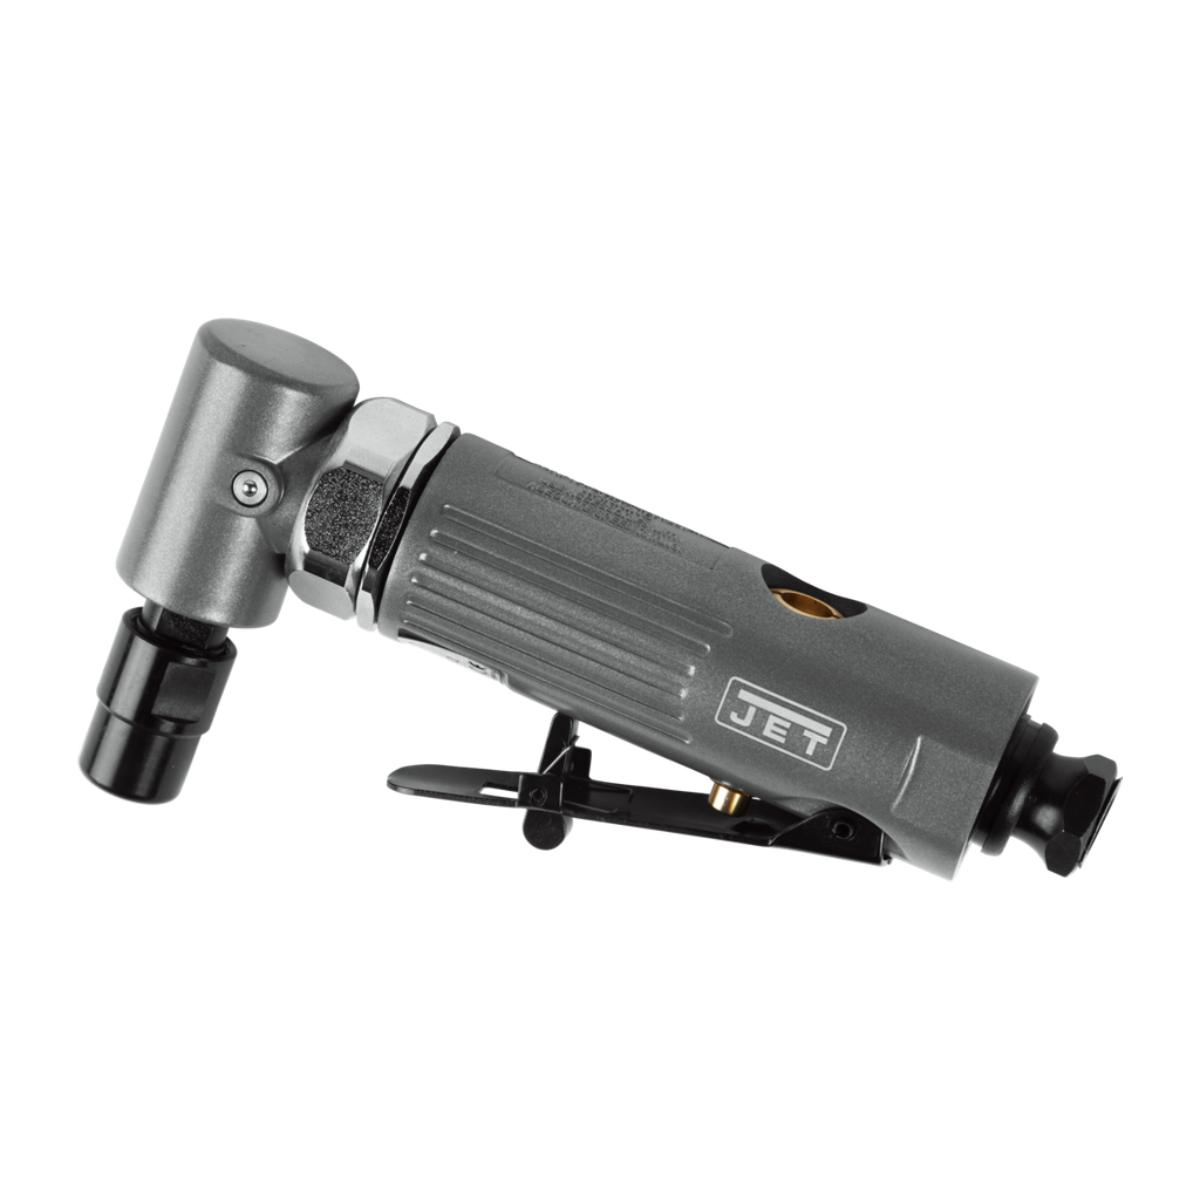 "R6 JAT-403 1/4"" RIGHT ANGLE DIE GRINDER"